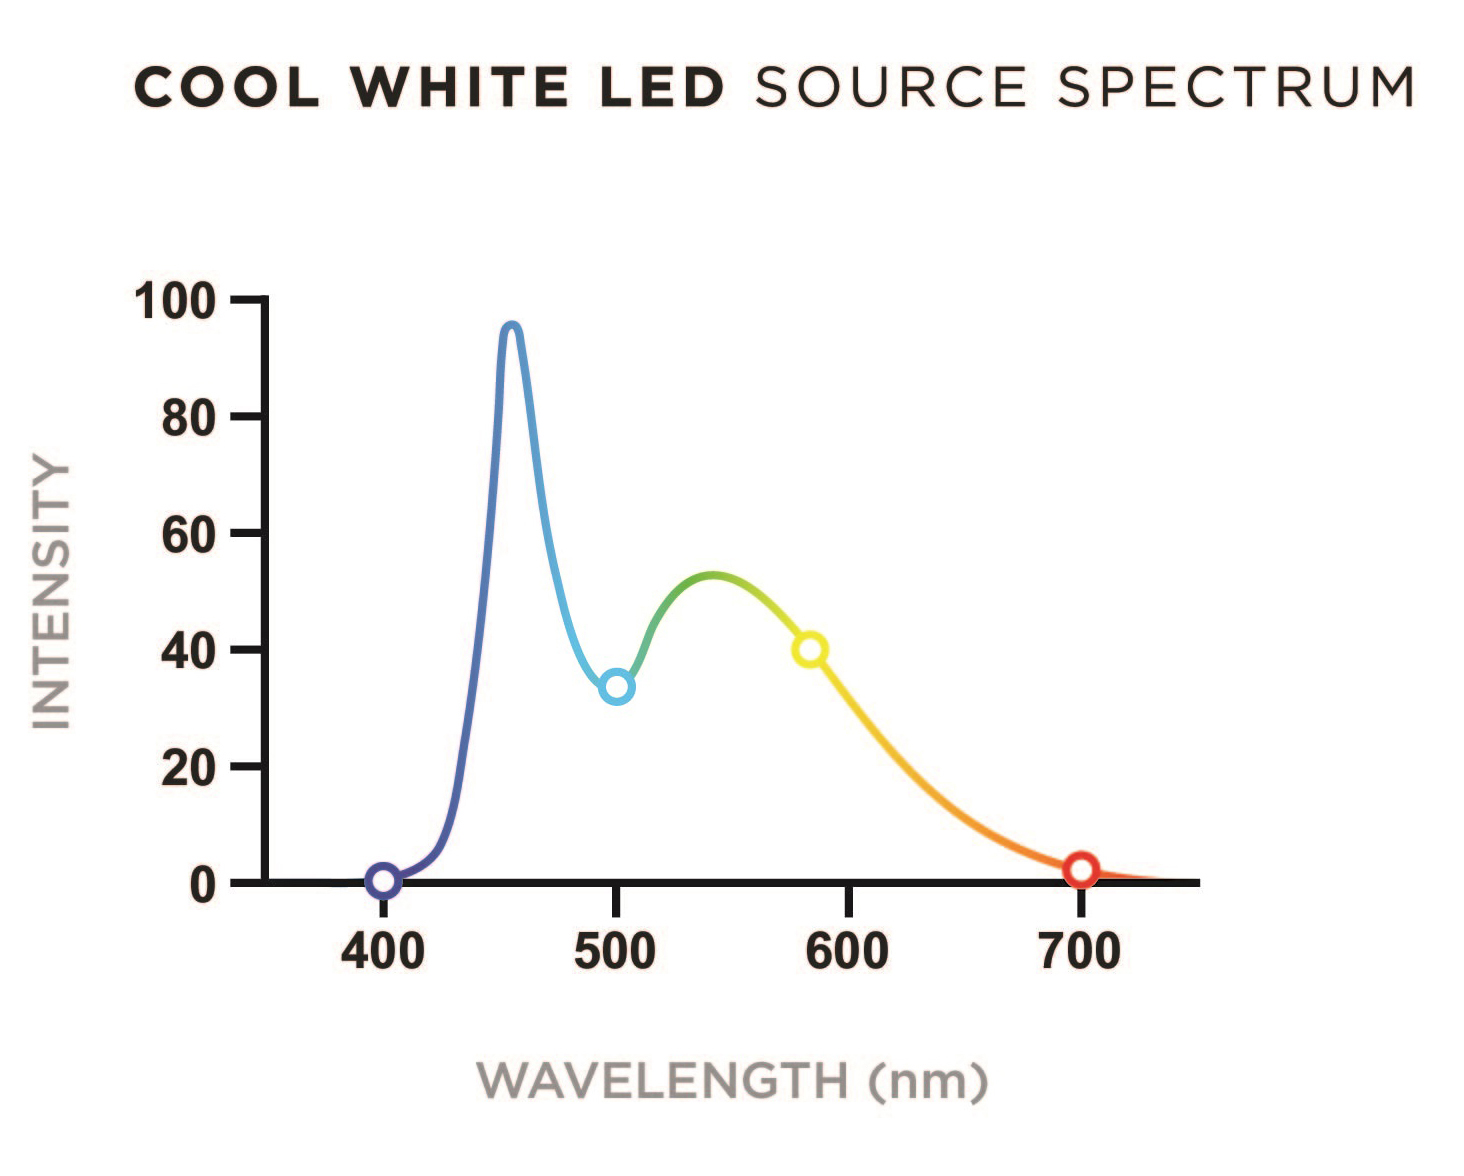 Artificial cool white LED source spectrum